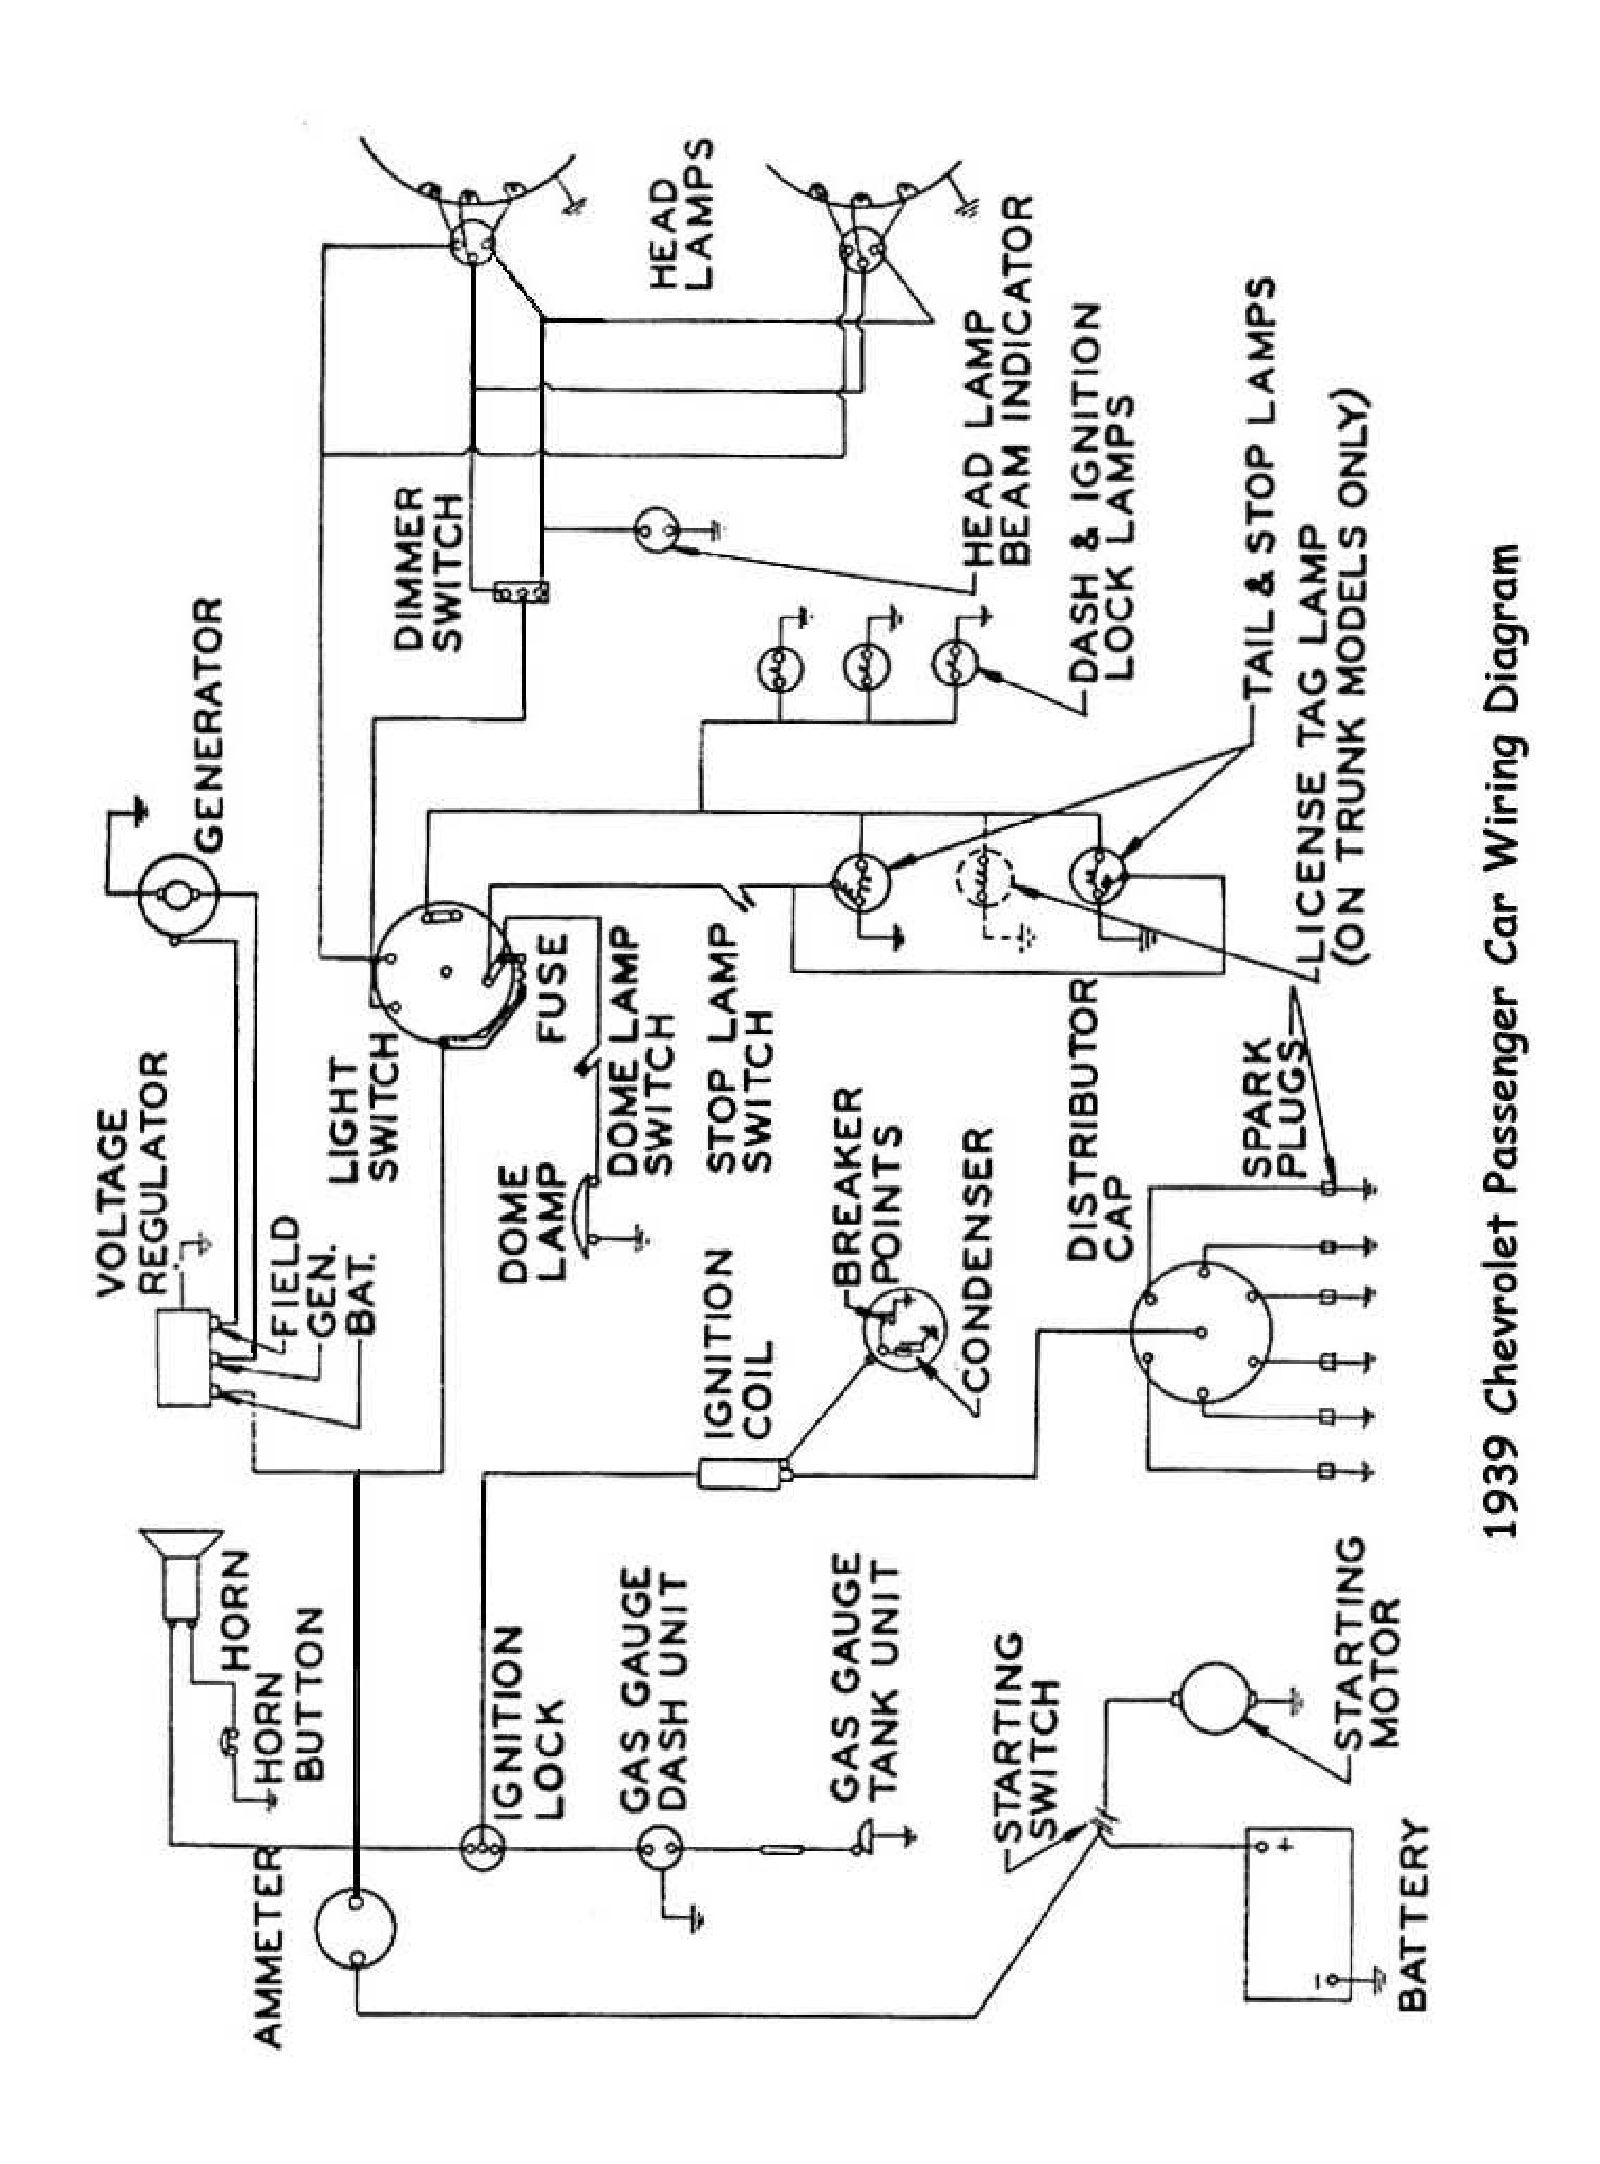 Wiring 39car gm distributor wiring diagram at ww w freeautoresponder co